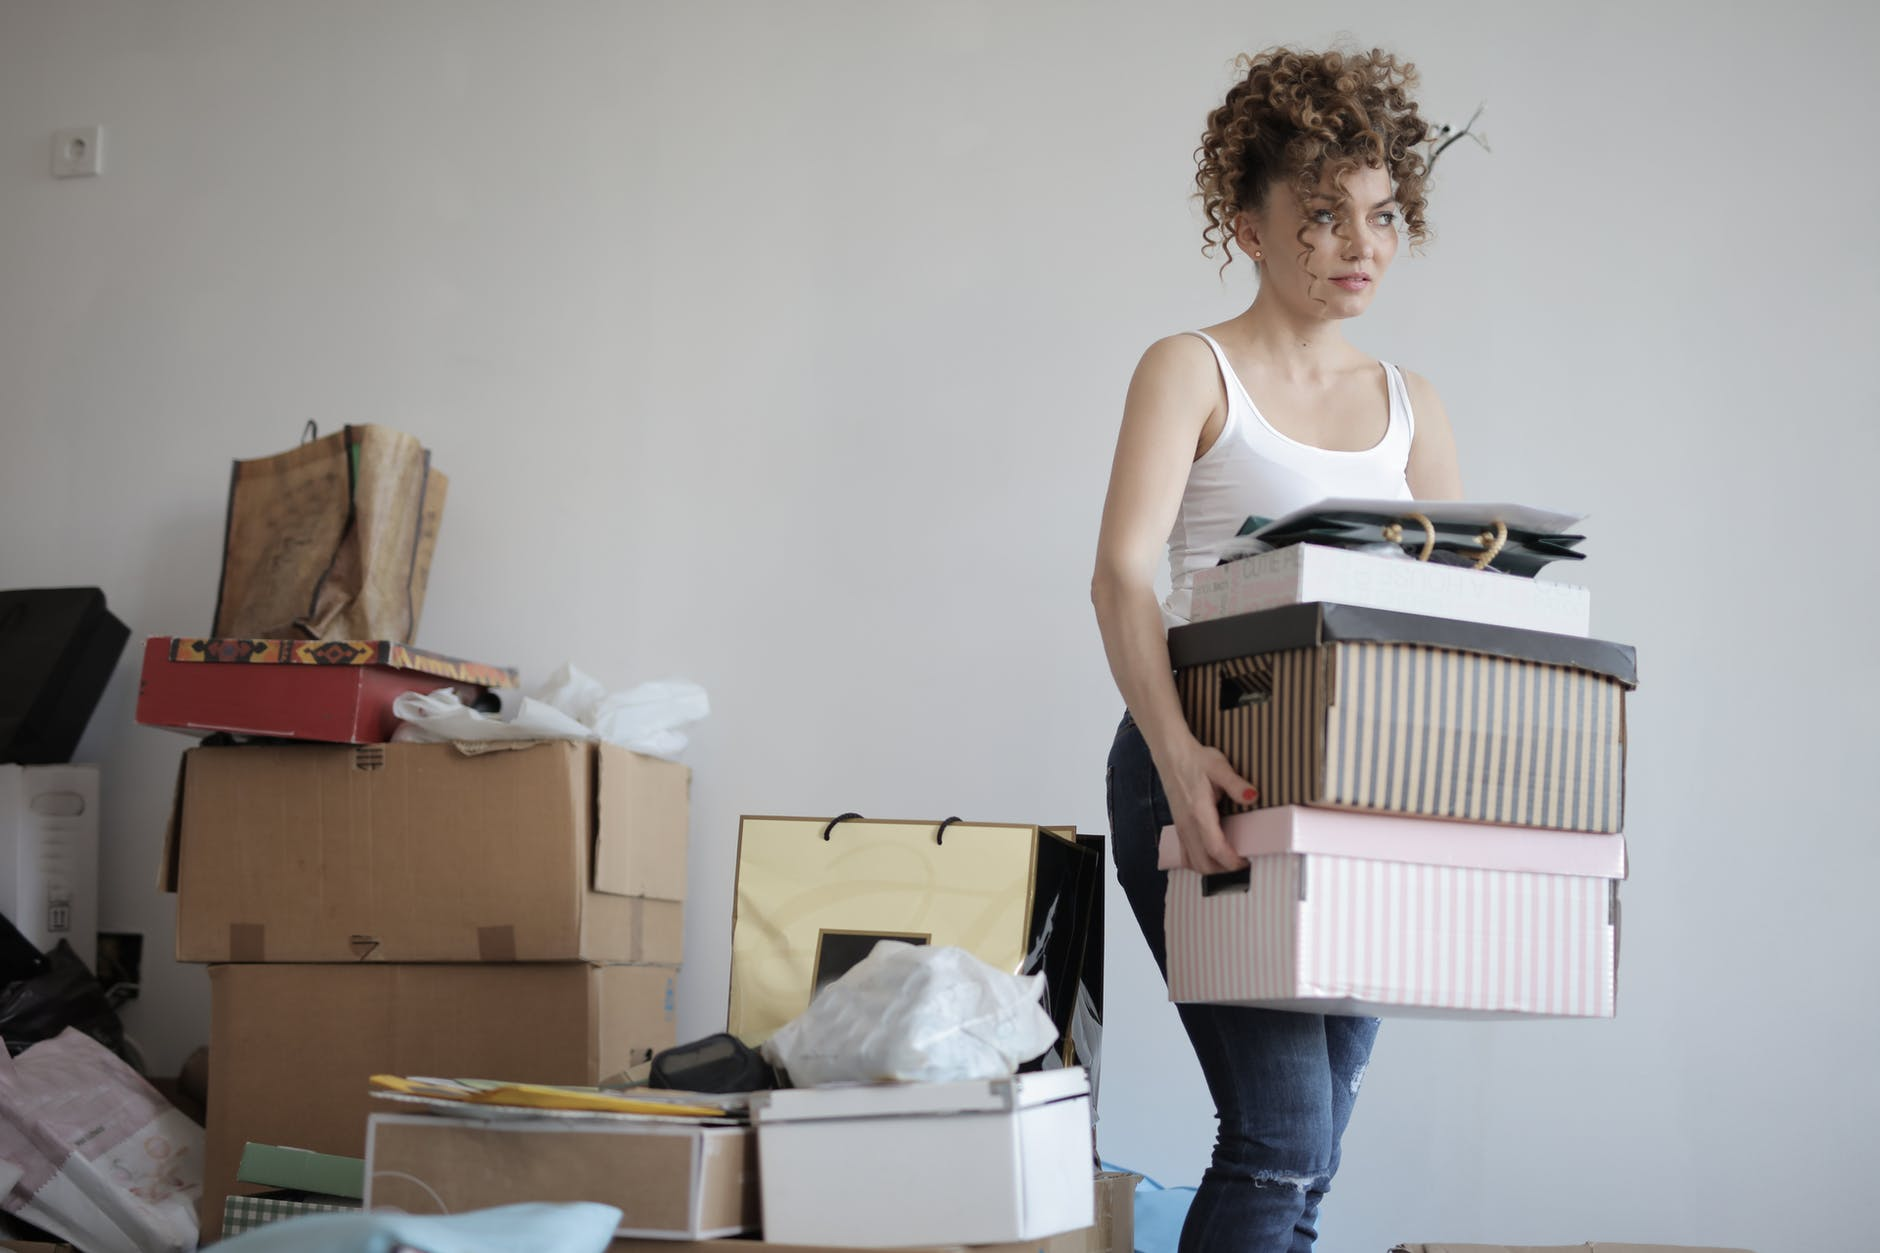 A woman holding three boxes next to a pile of other boxes.